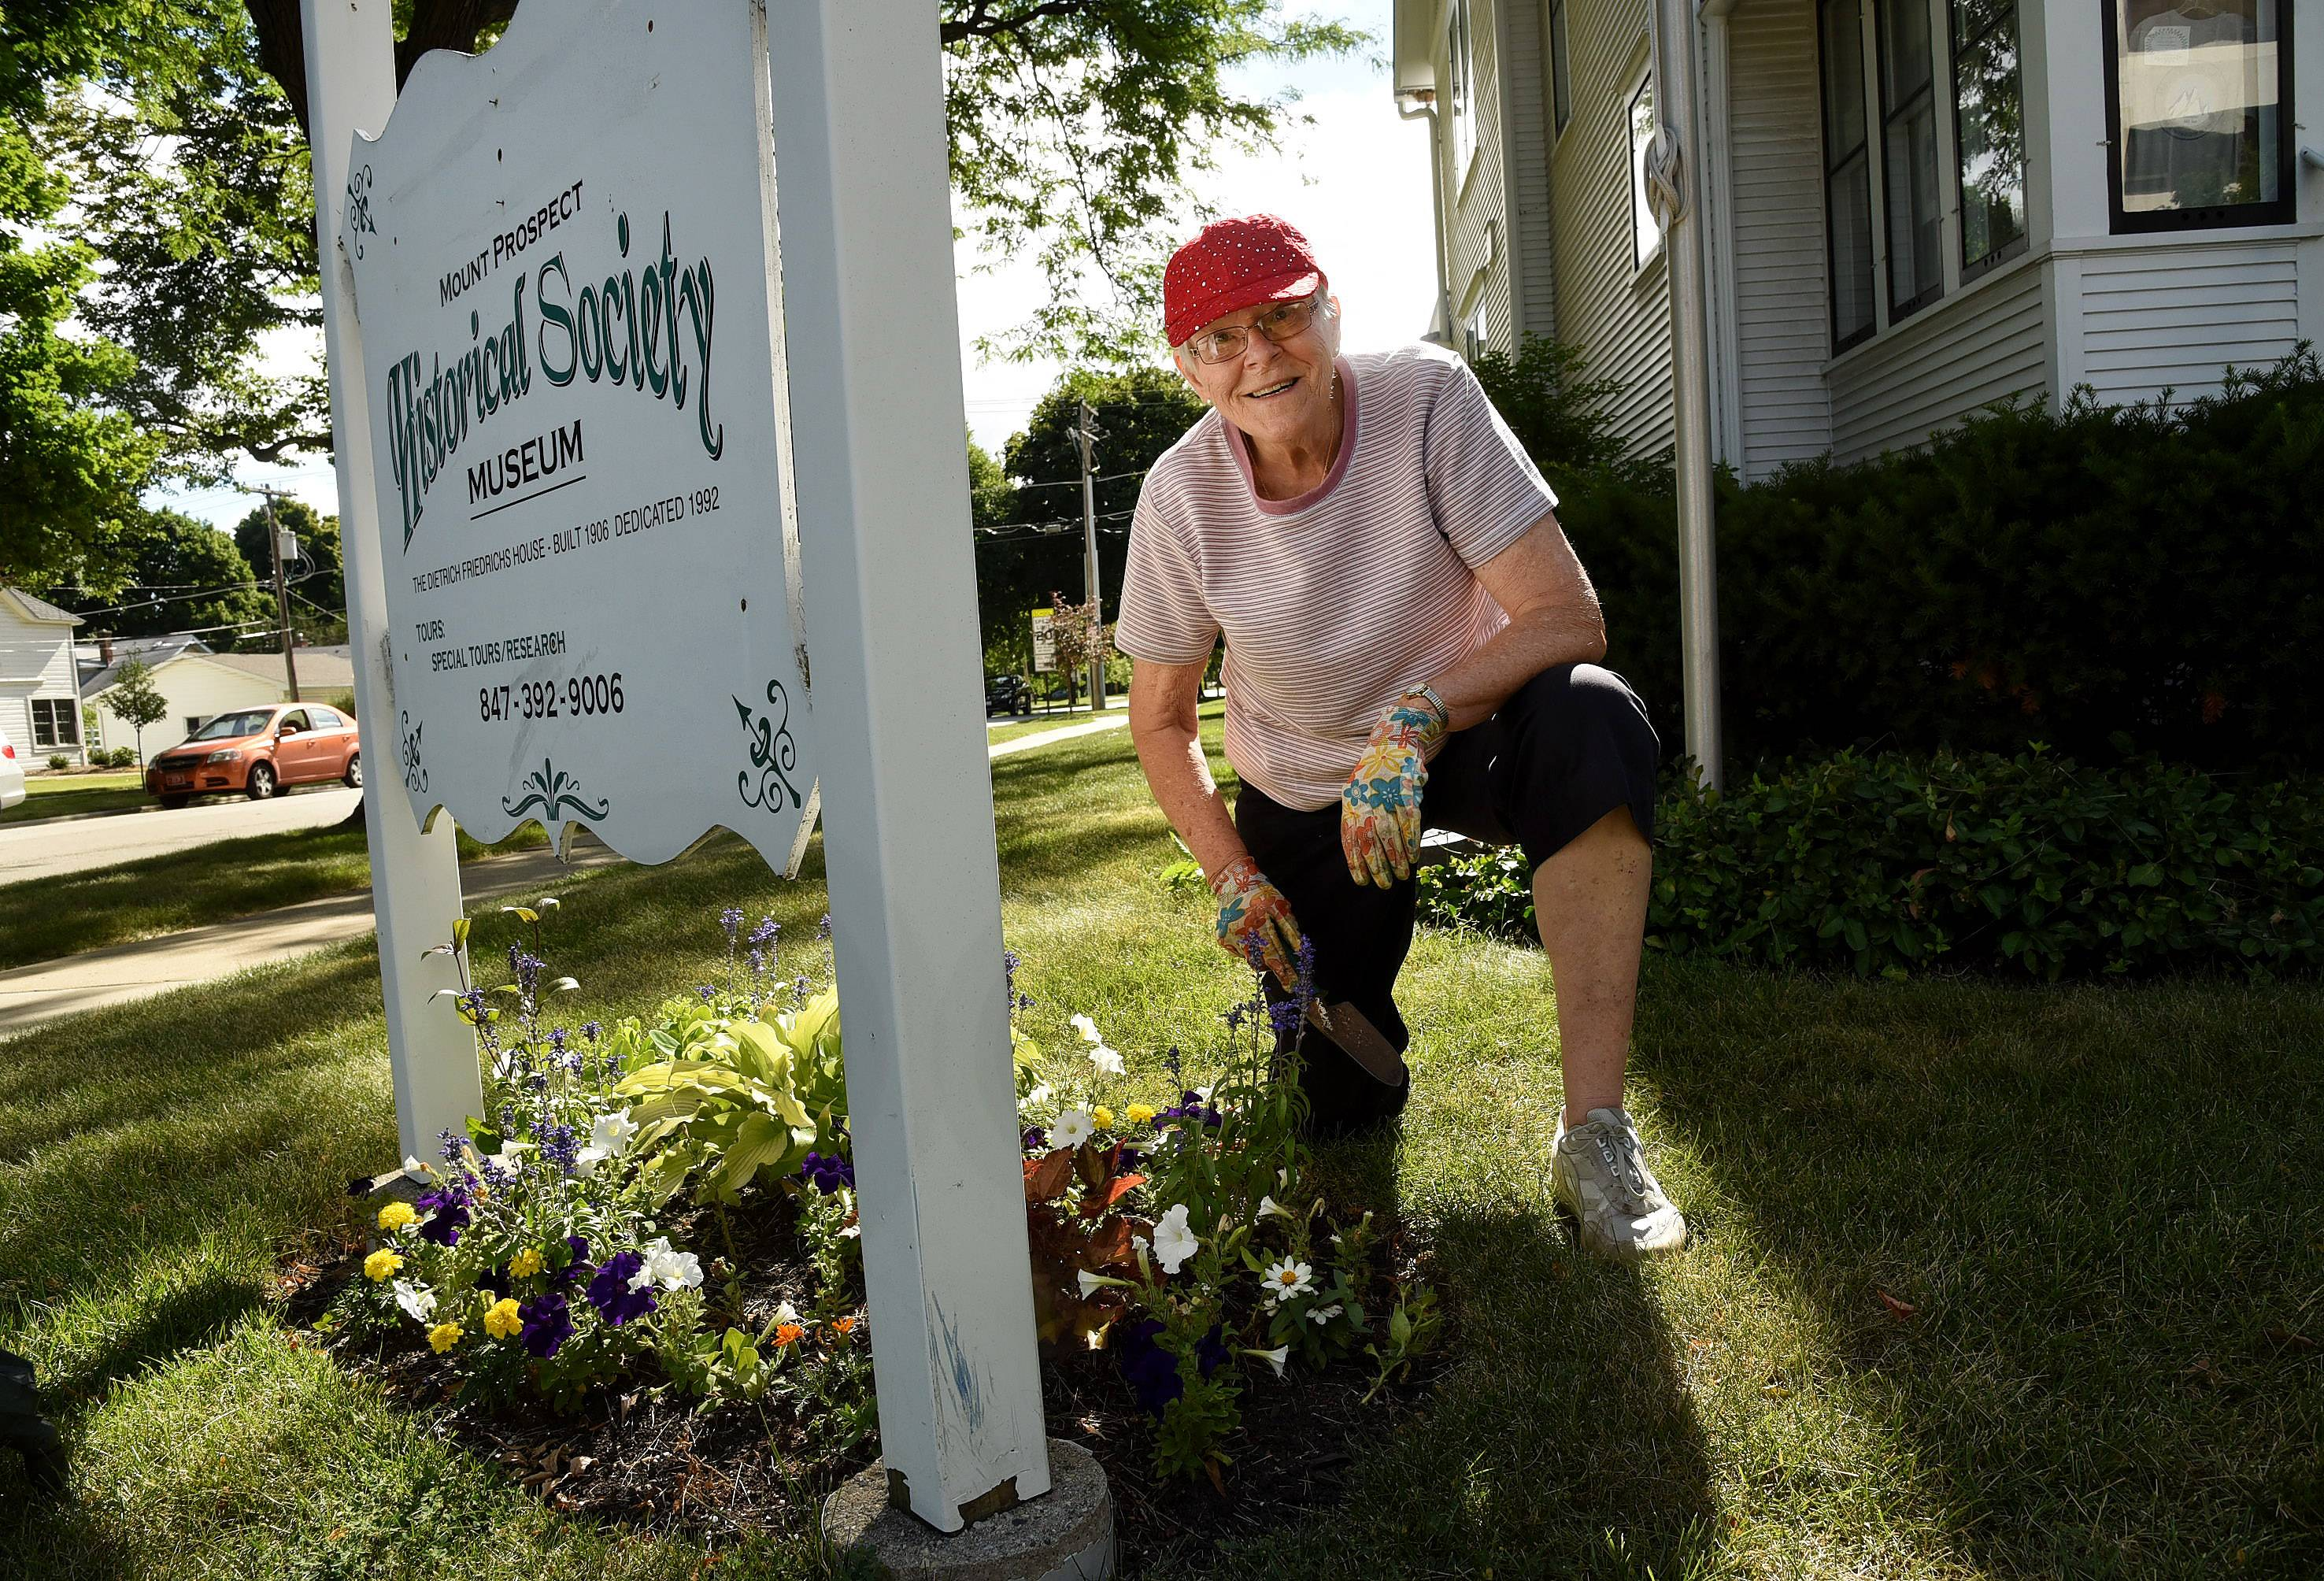 Rita Waters, who is nearly 80, volunteers her gardening skills at the Mount Prospect Historical Society's flower beds.